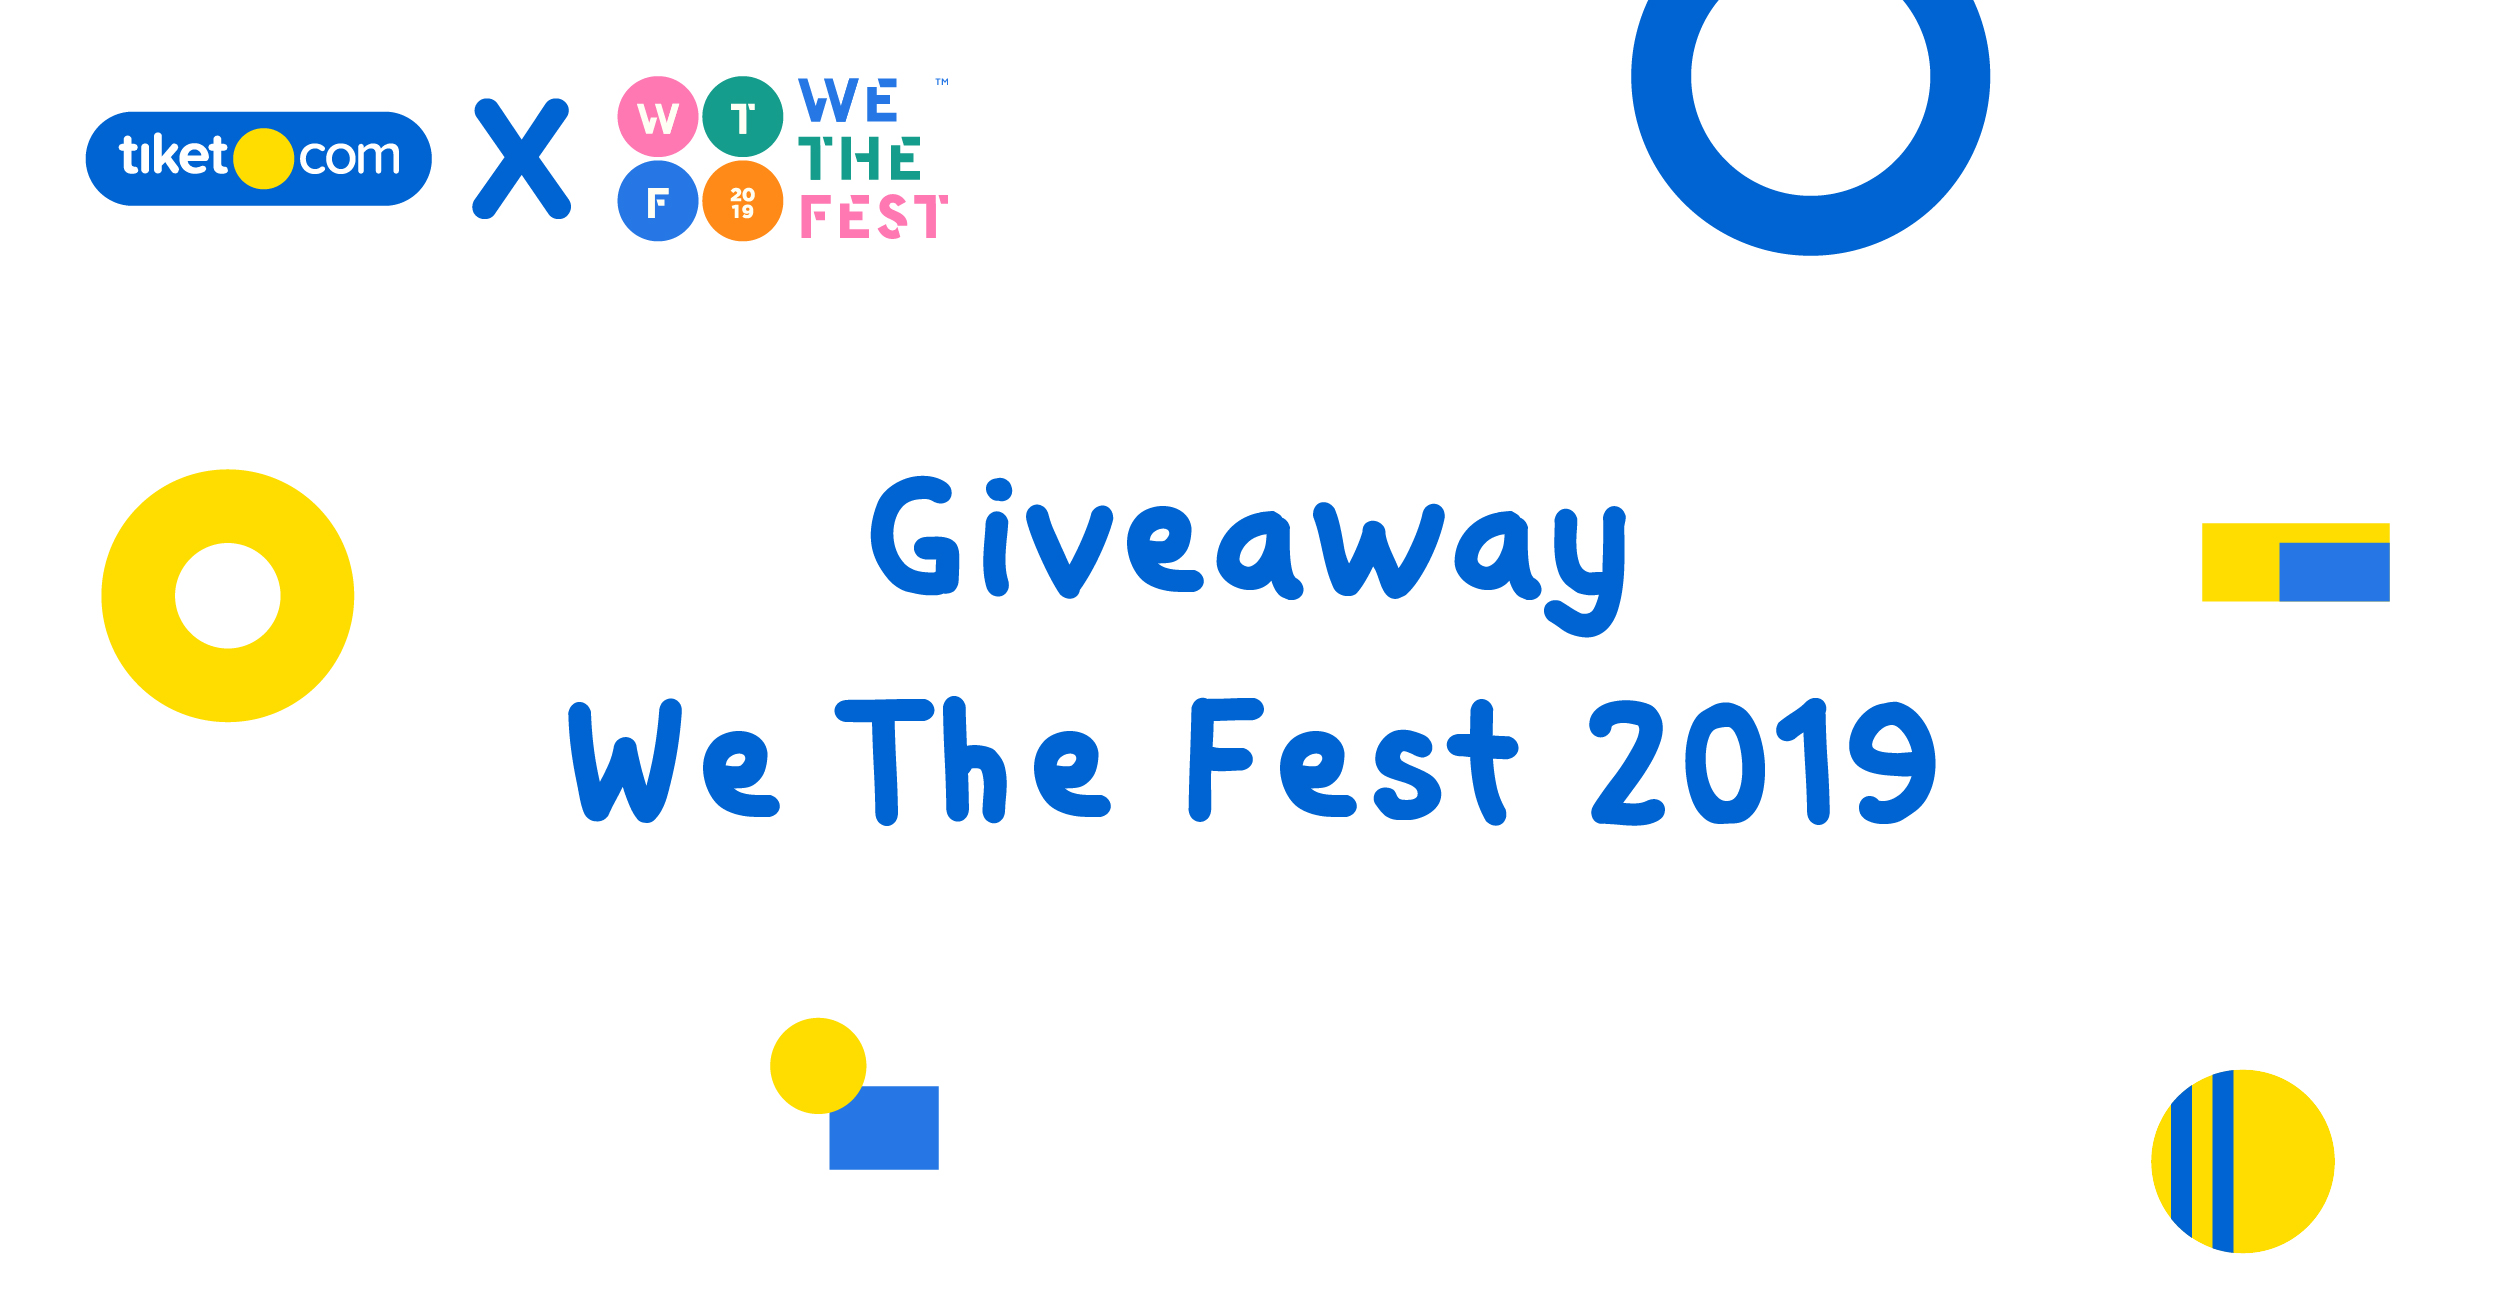 Giveaway We The Fest 2019